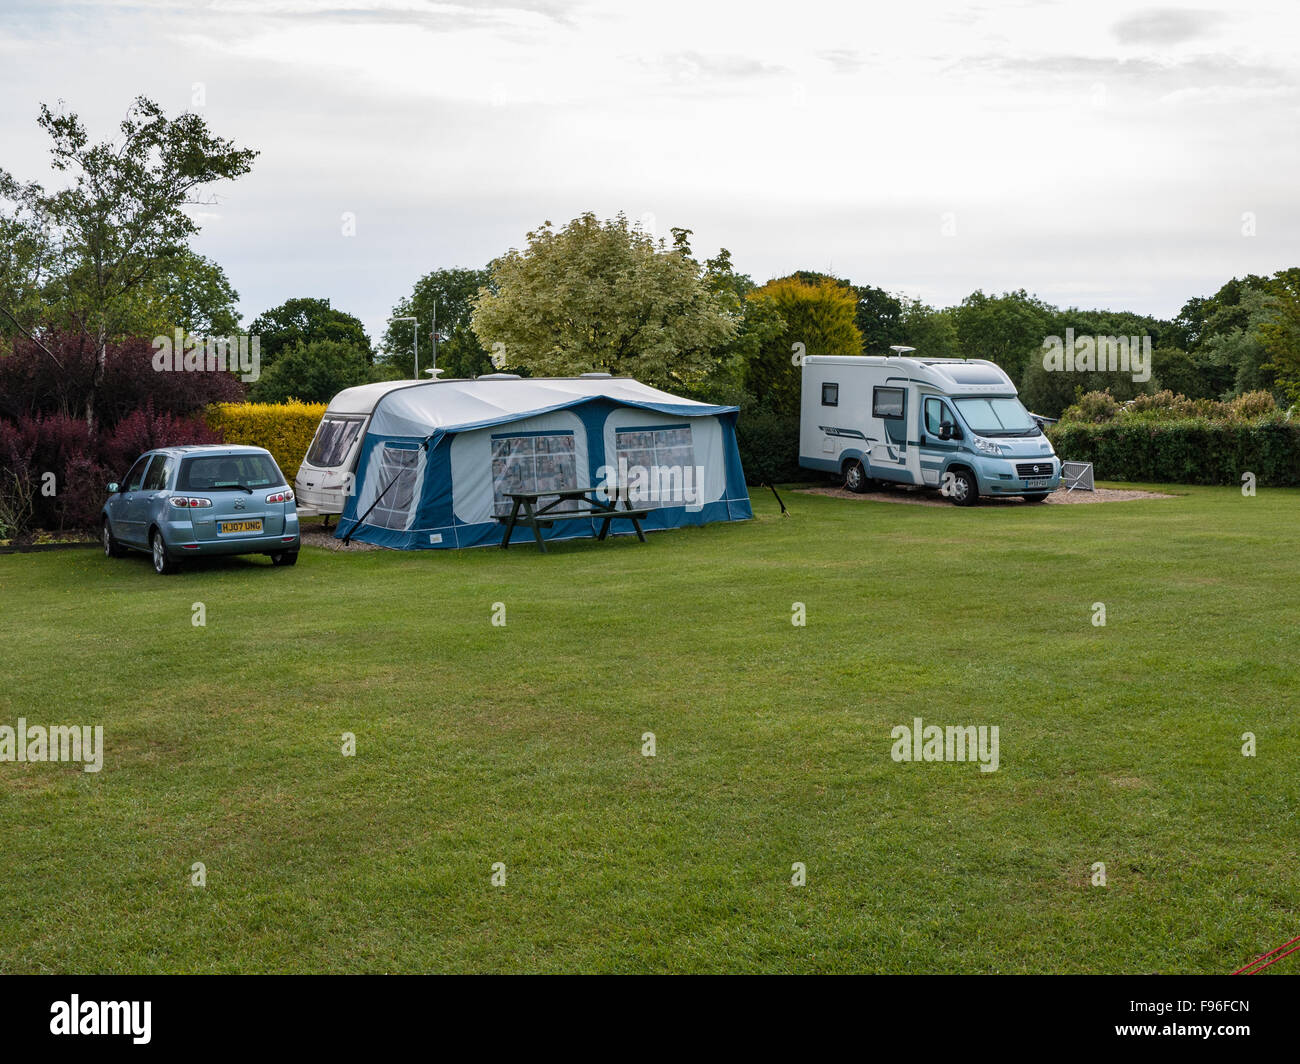 English campsite with caravans and awnings - Stock Image